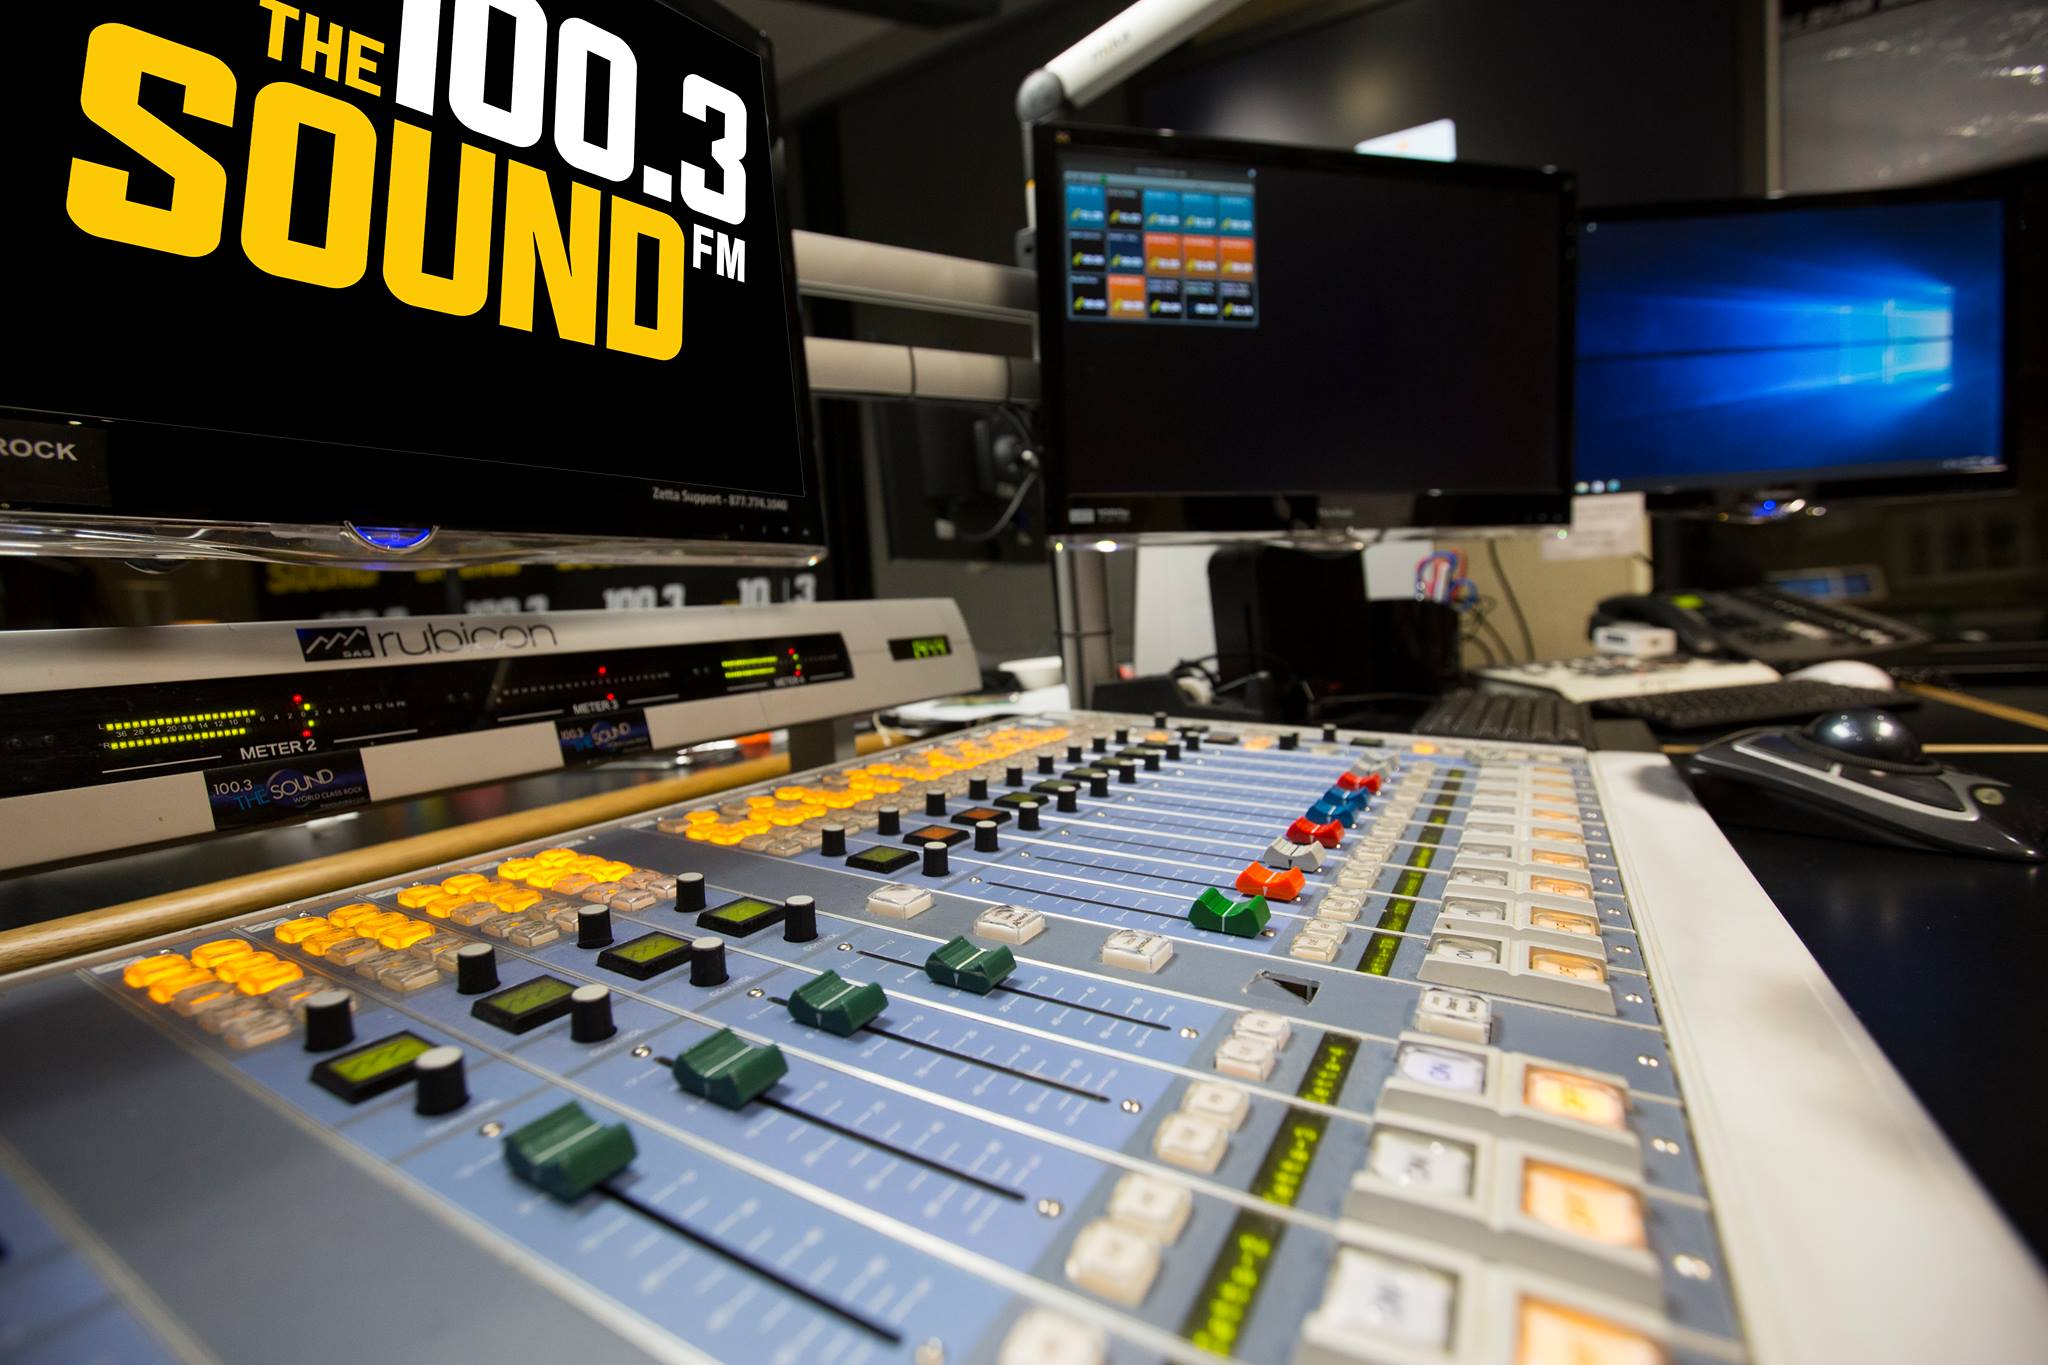 100.3 The Sound gibt es nicht mehr (Foto: 100.3 The Sound Radio Station Legacy Page)